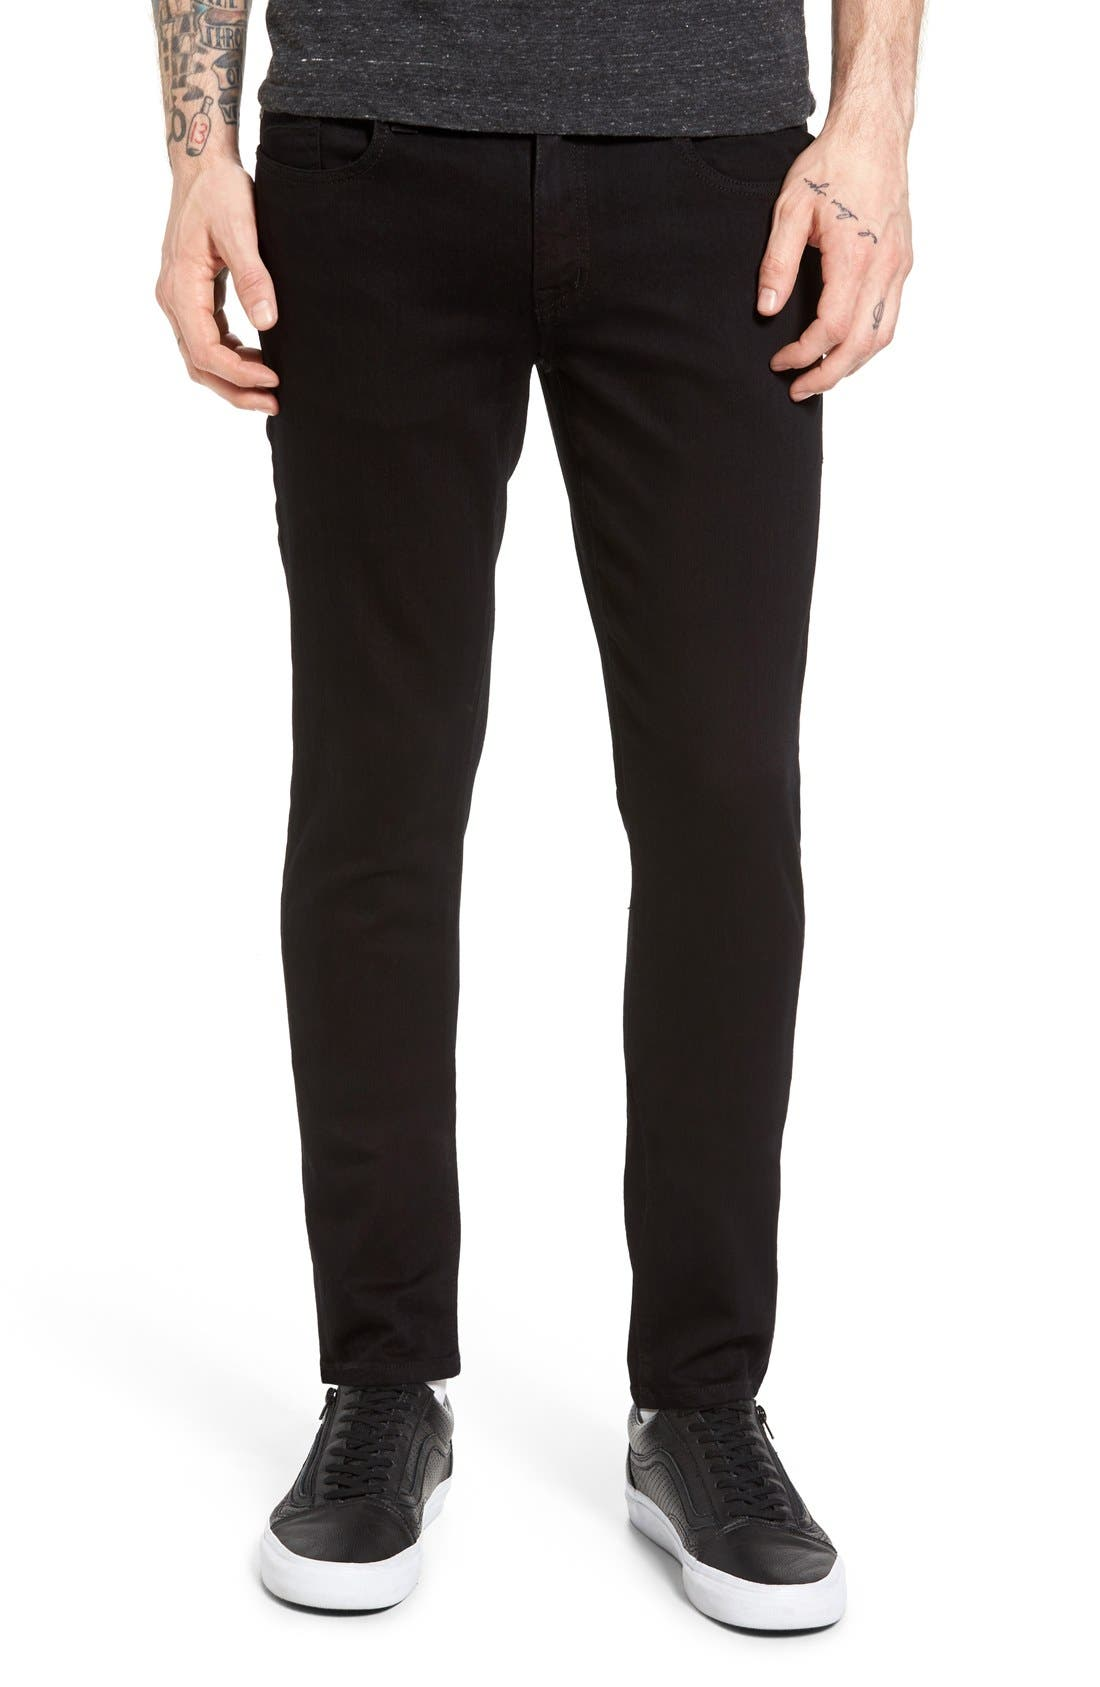 Vantage Skinny Fit Jeans,                             Main thumbnail 1, color,                             EVER BLACK